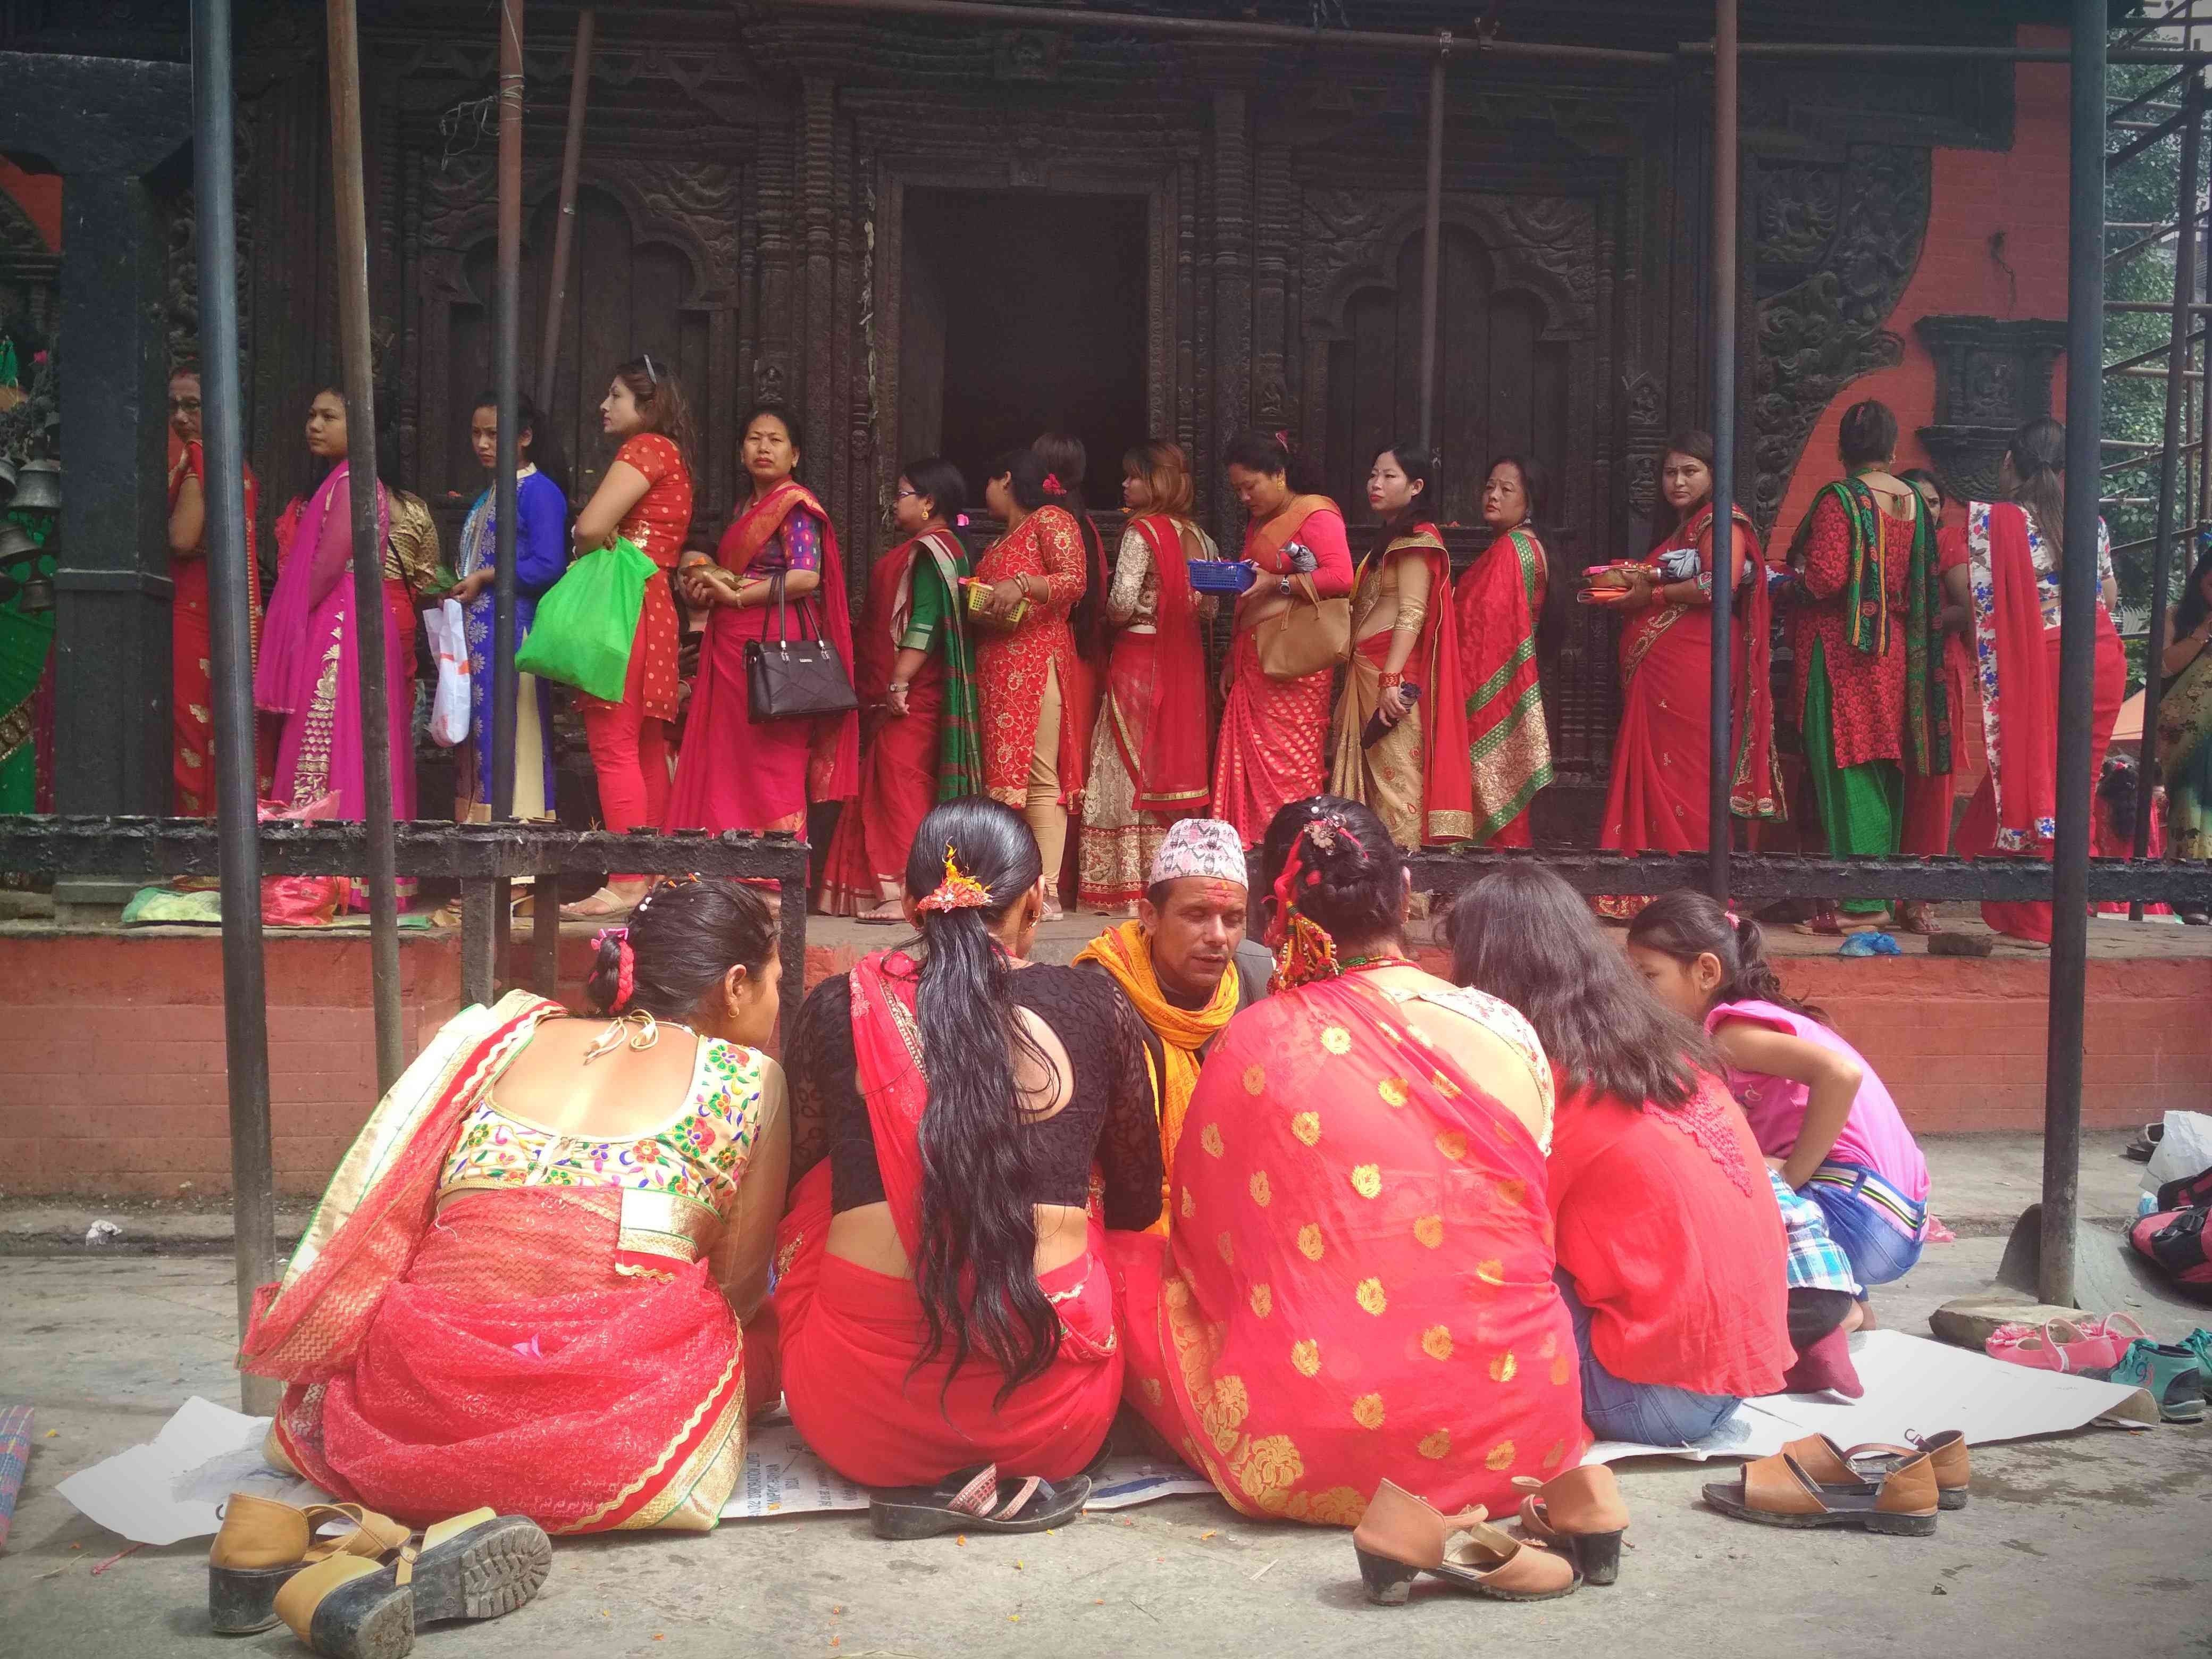 women wearing red saris lined up at a temple and seated on the ground